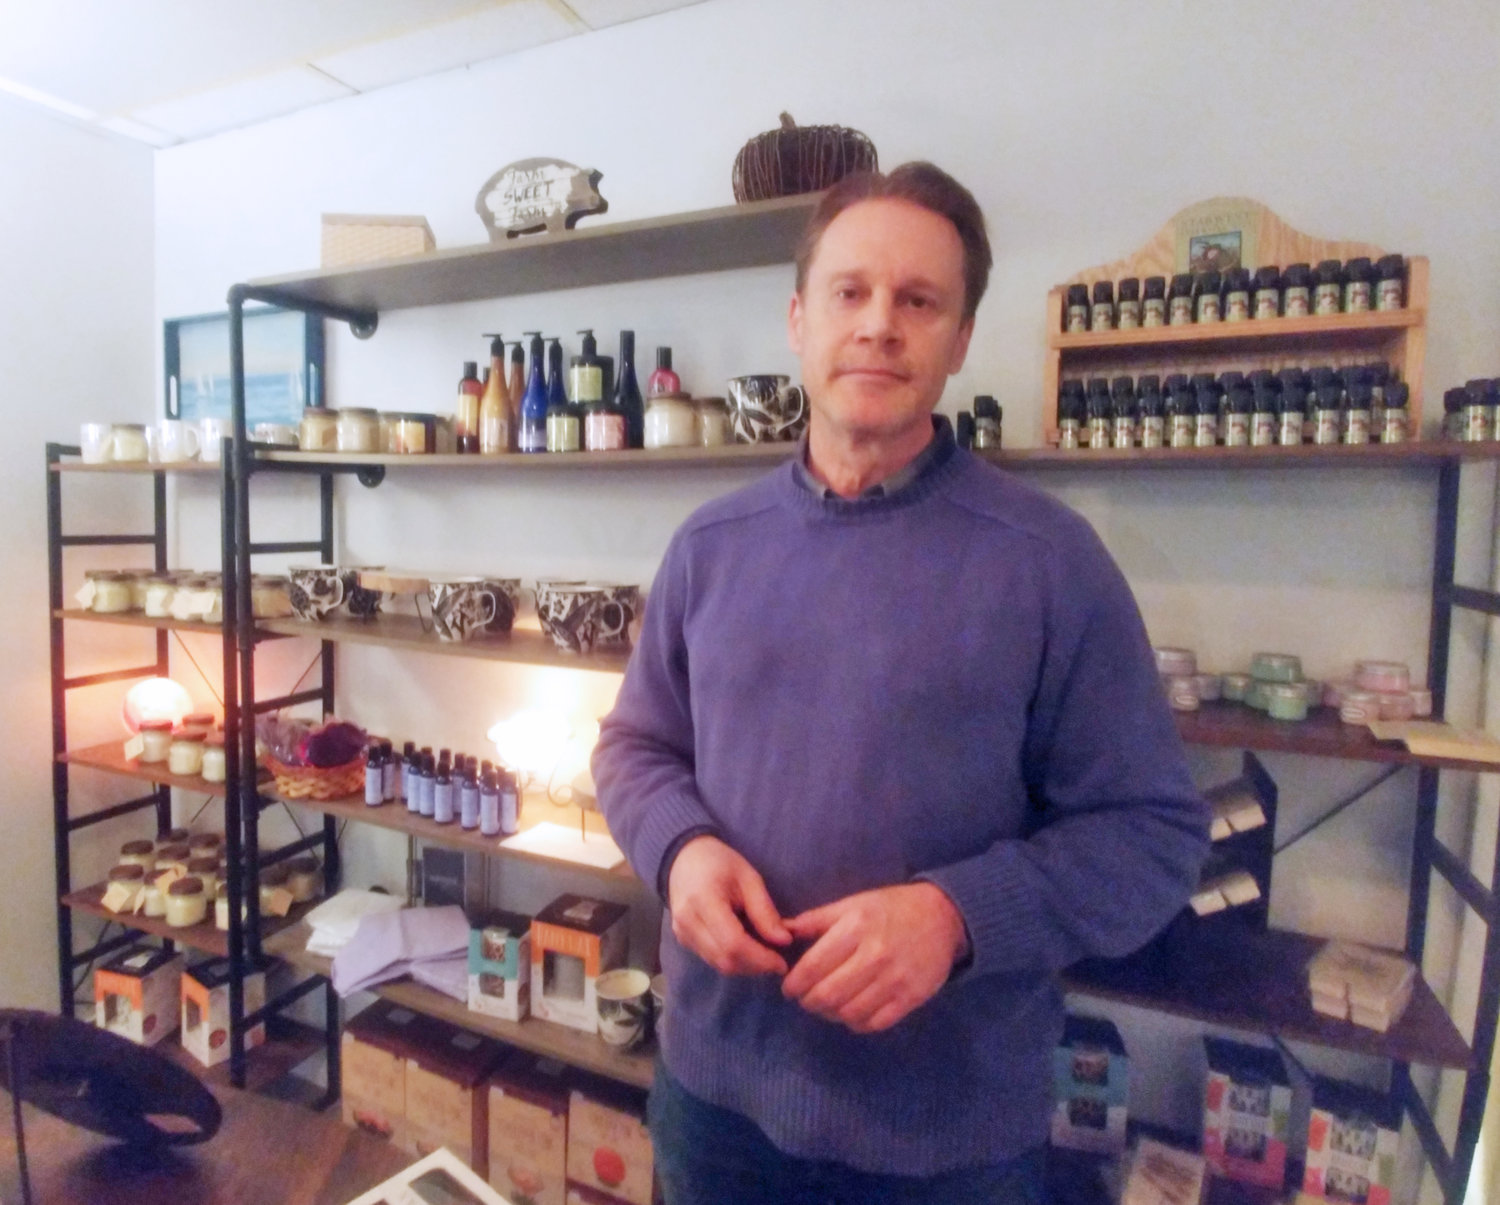 Owner of Massage and Wellness Alan Glanz added holistic goods to his shop.